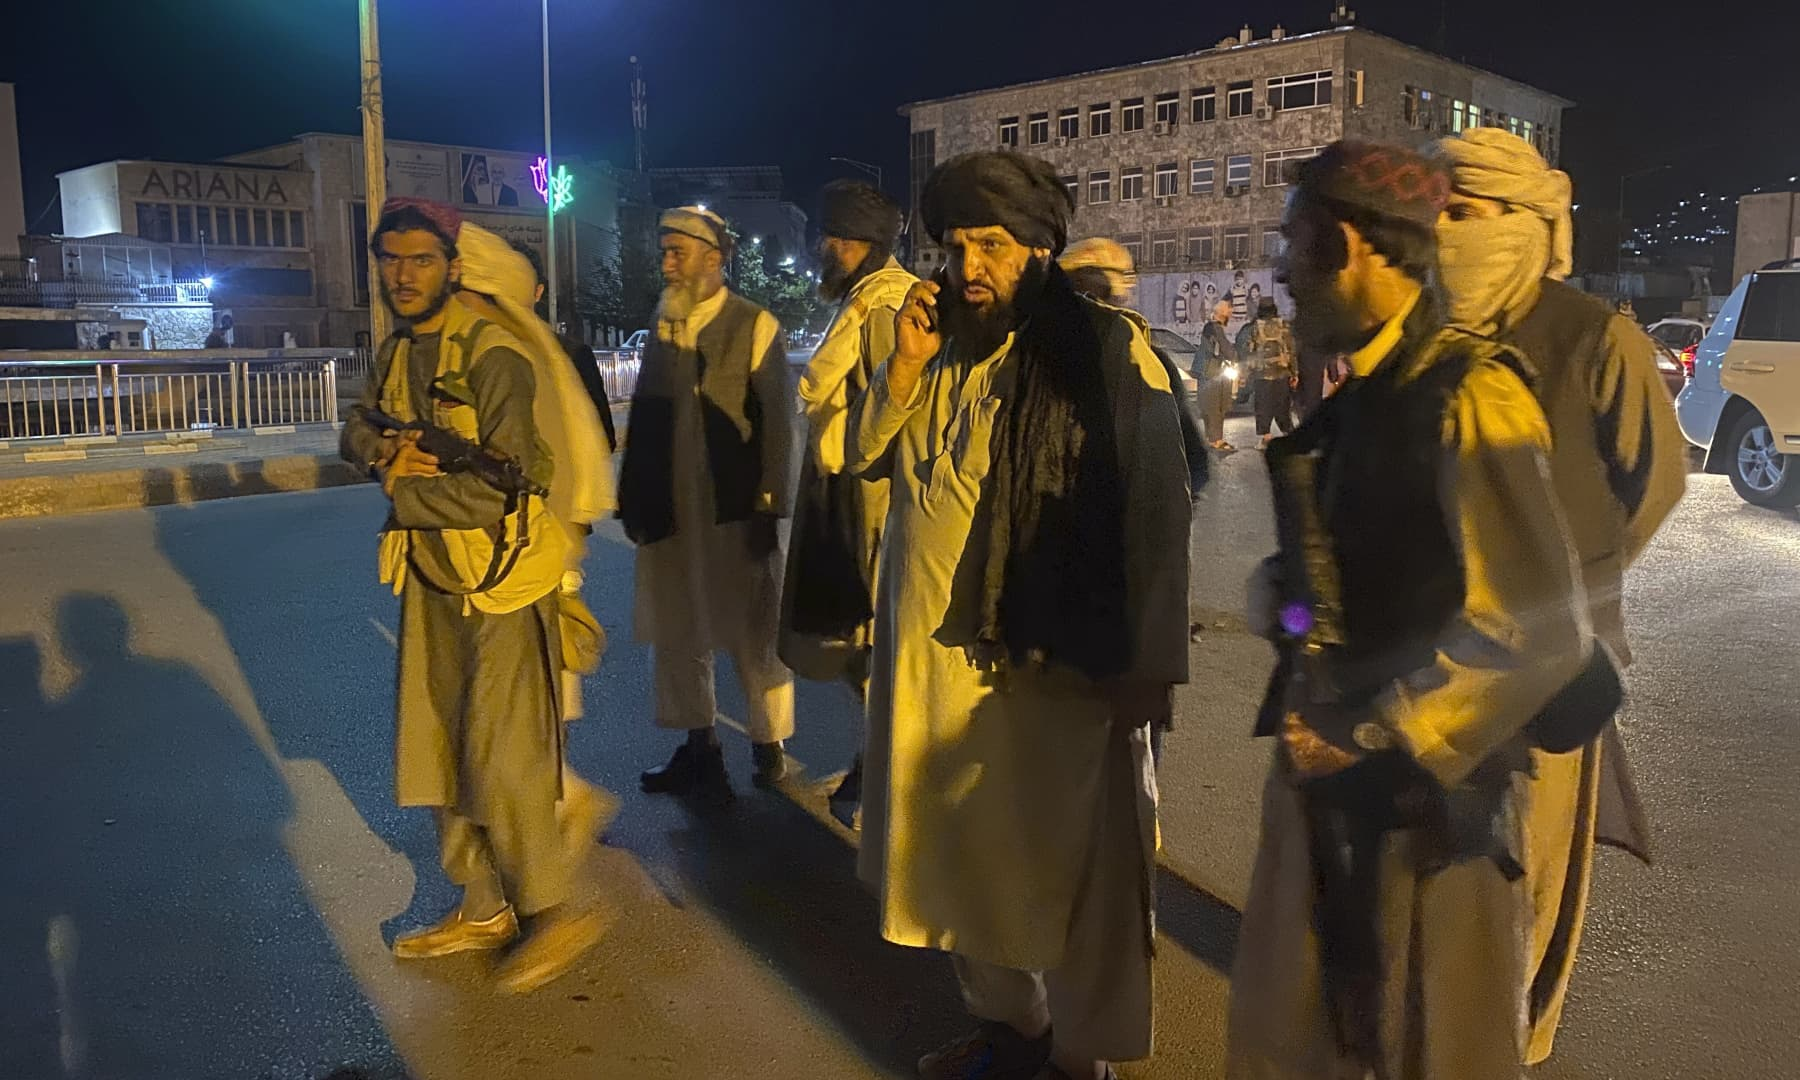 Taliban fighters take control of the Afghan presidential palace after Afghan President Ashraf Ghani fled the country in Kabul, Afghanistan on August 15, 2021. — AP